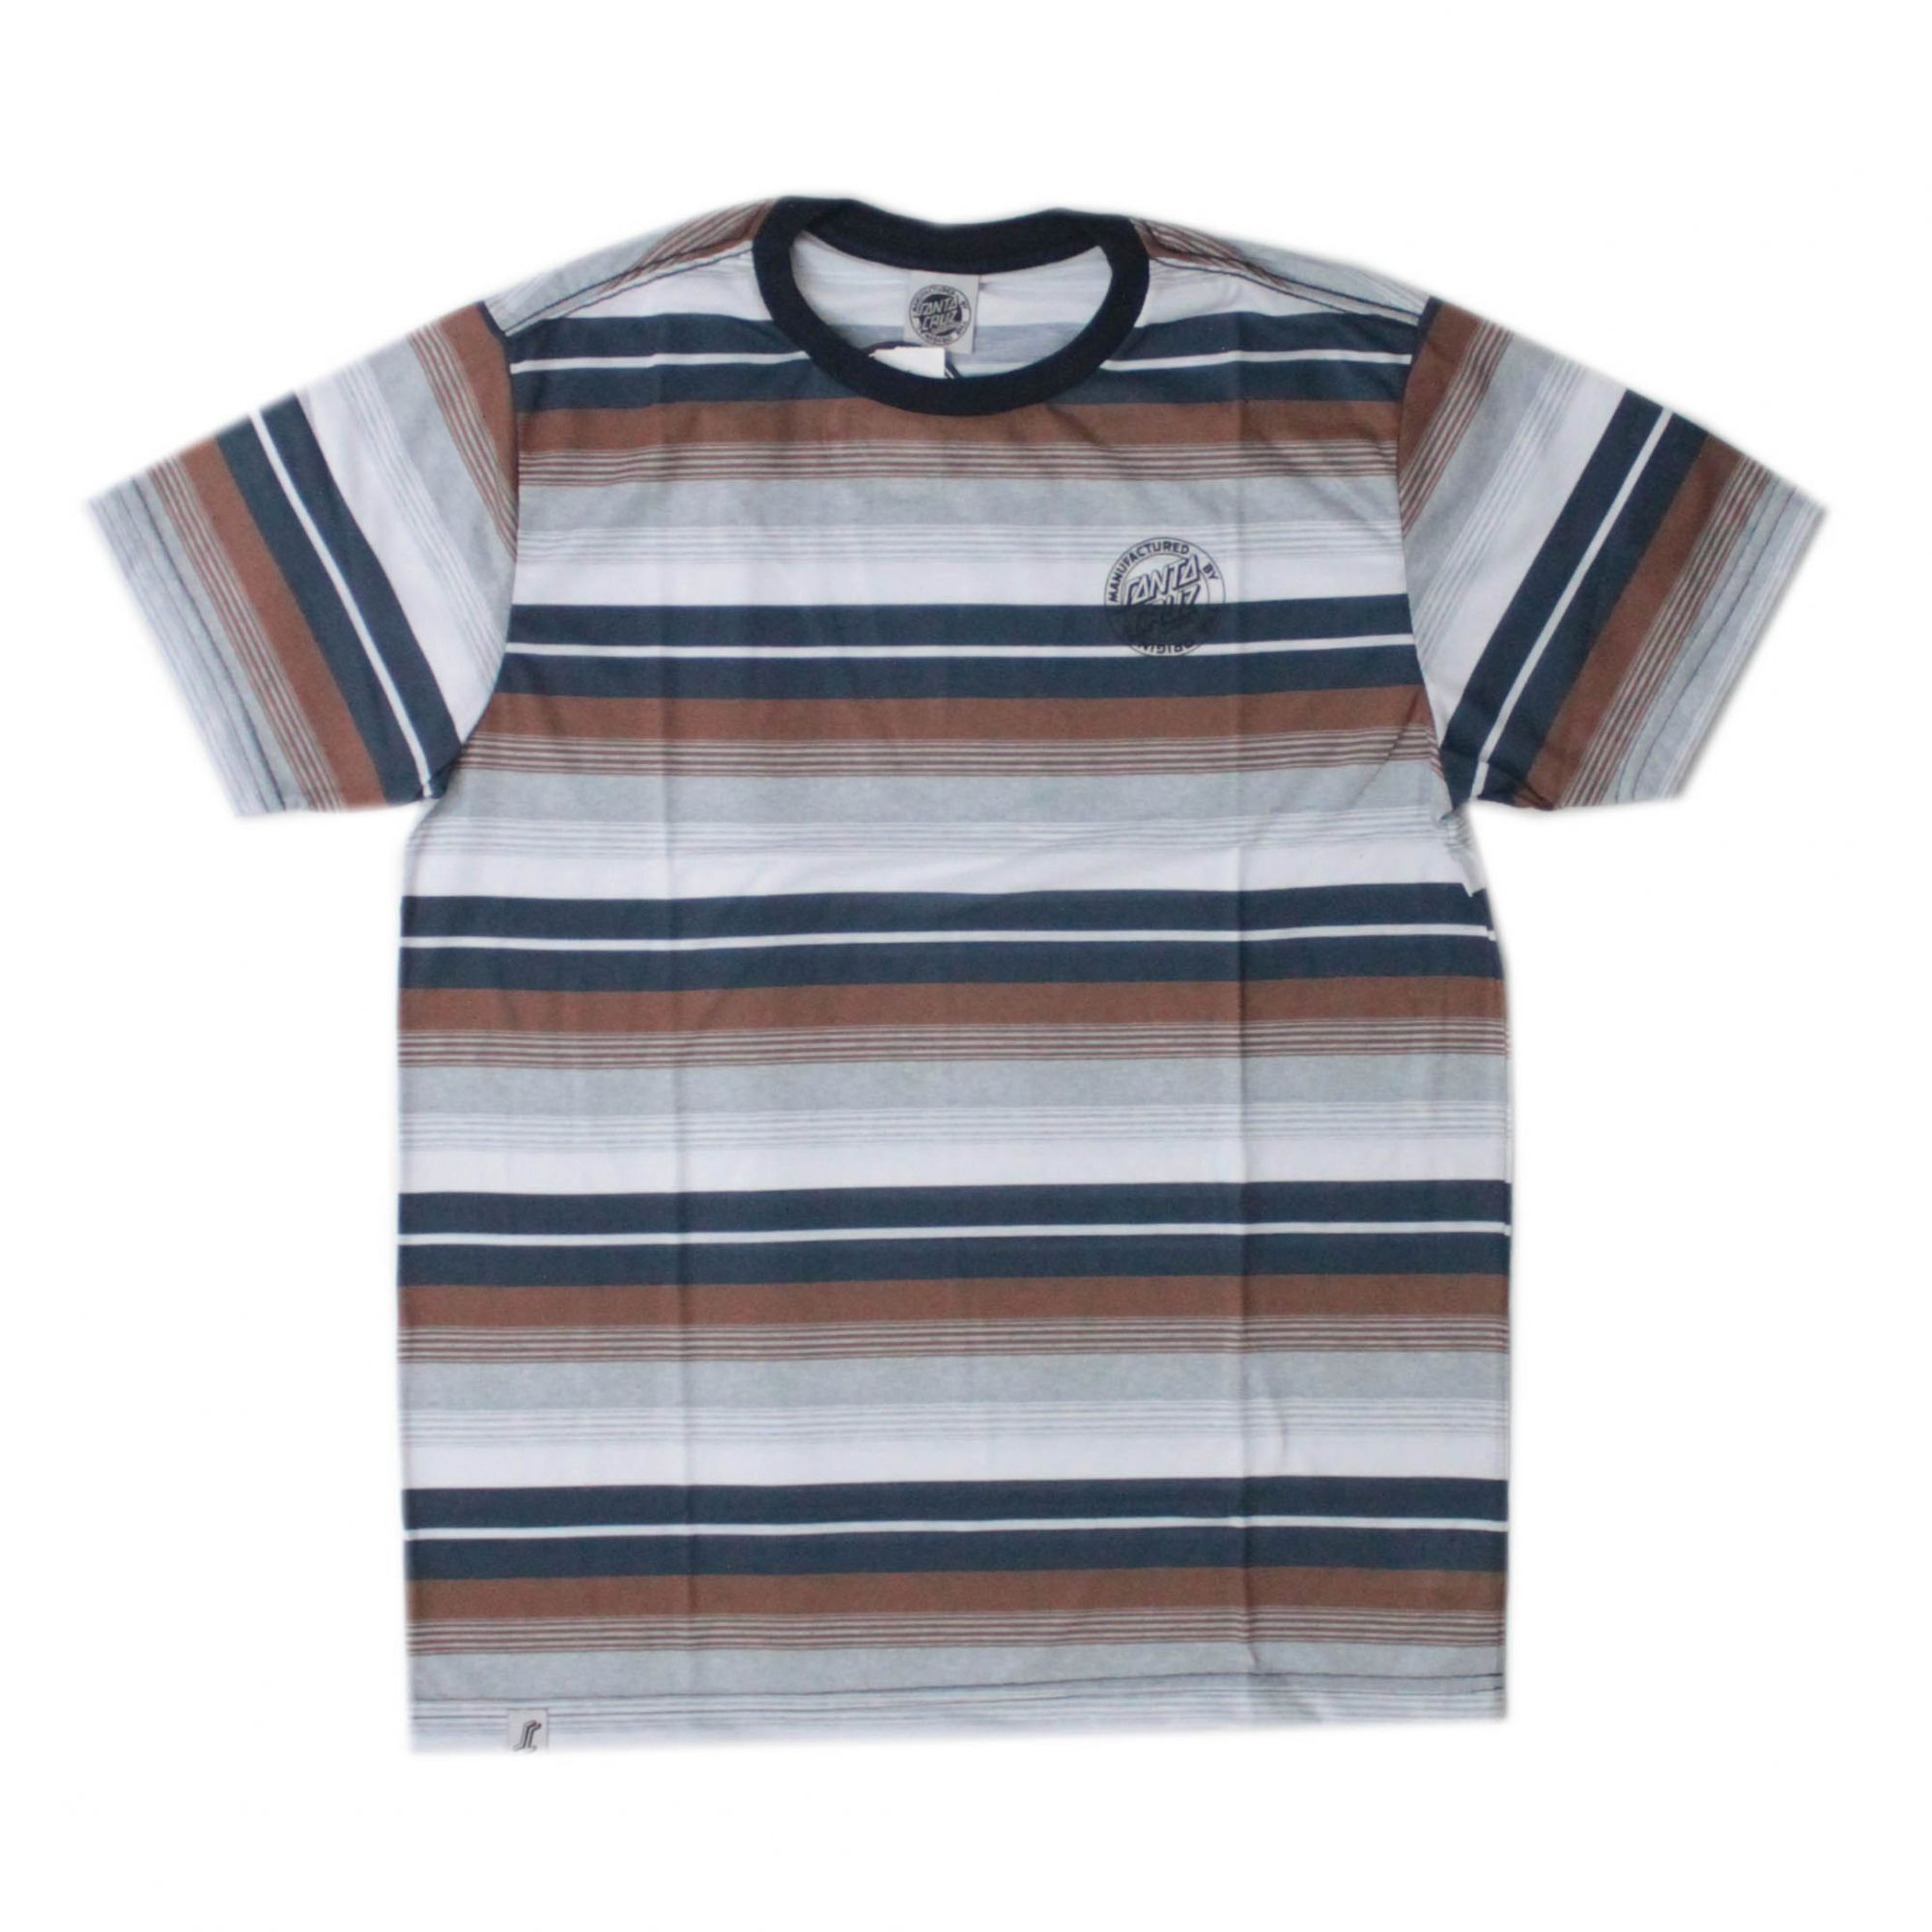 Camiseta Santa Cruz Parallel Stripe Marinho